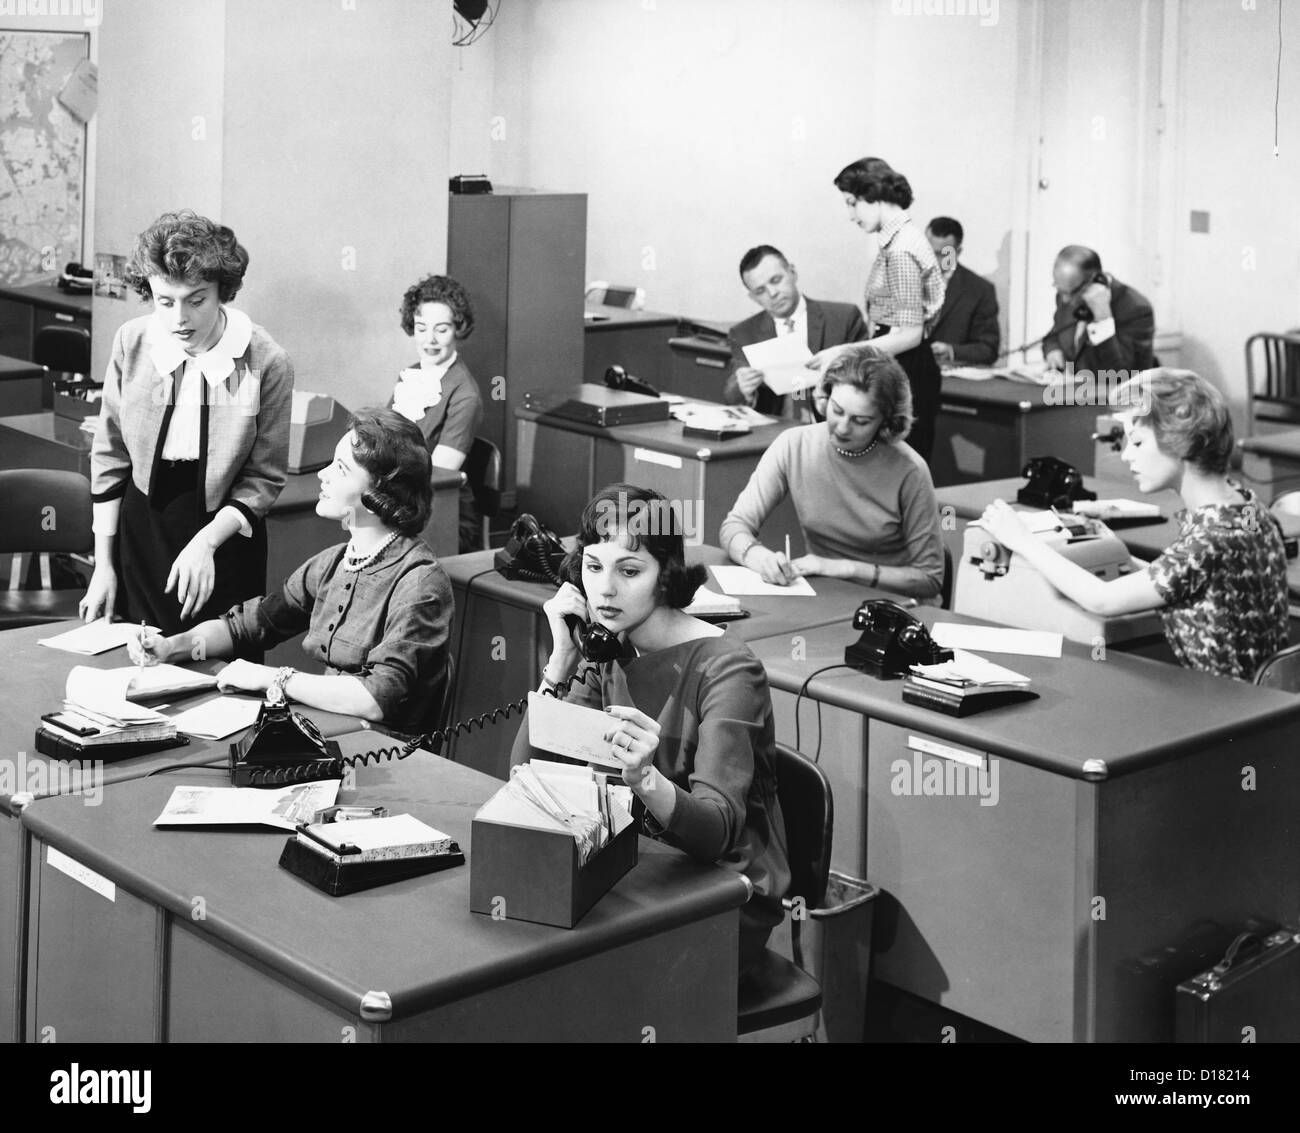 Busy Office In The 1950-1960's Stock Photo, Royalty Free